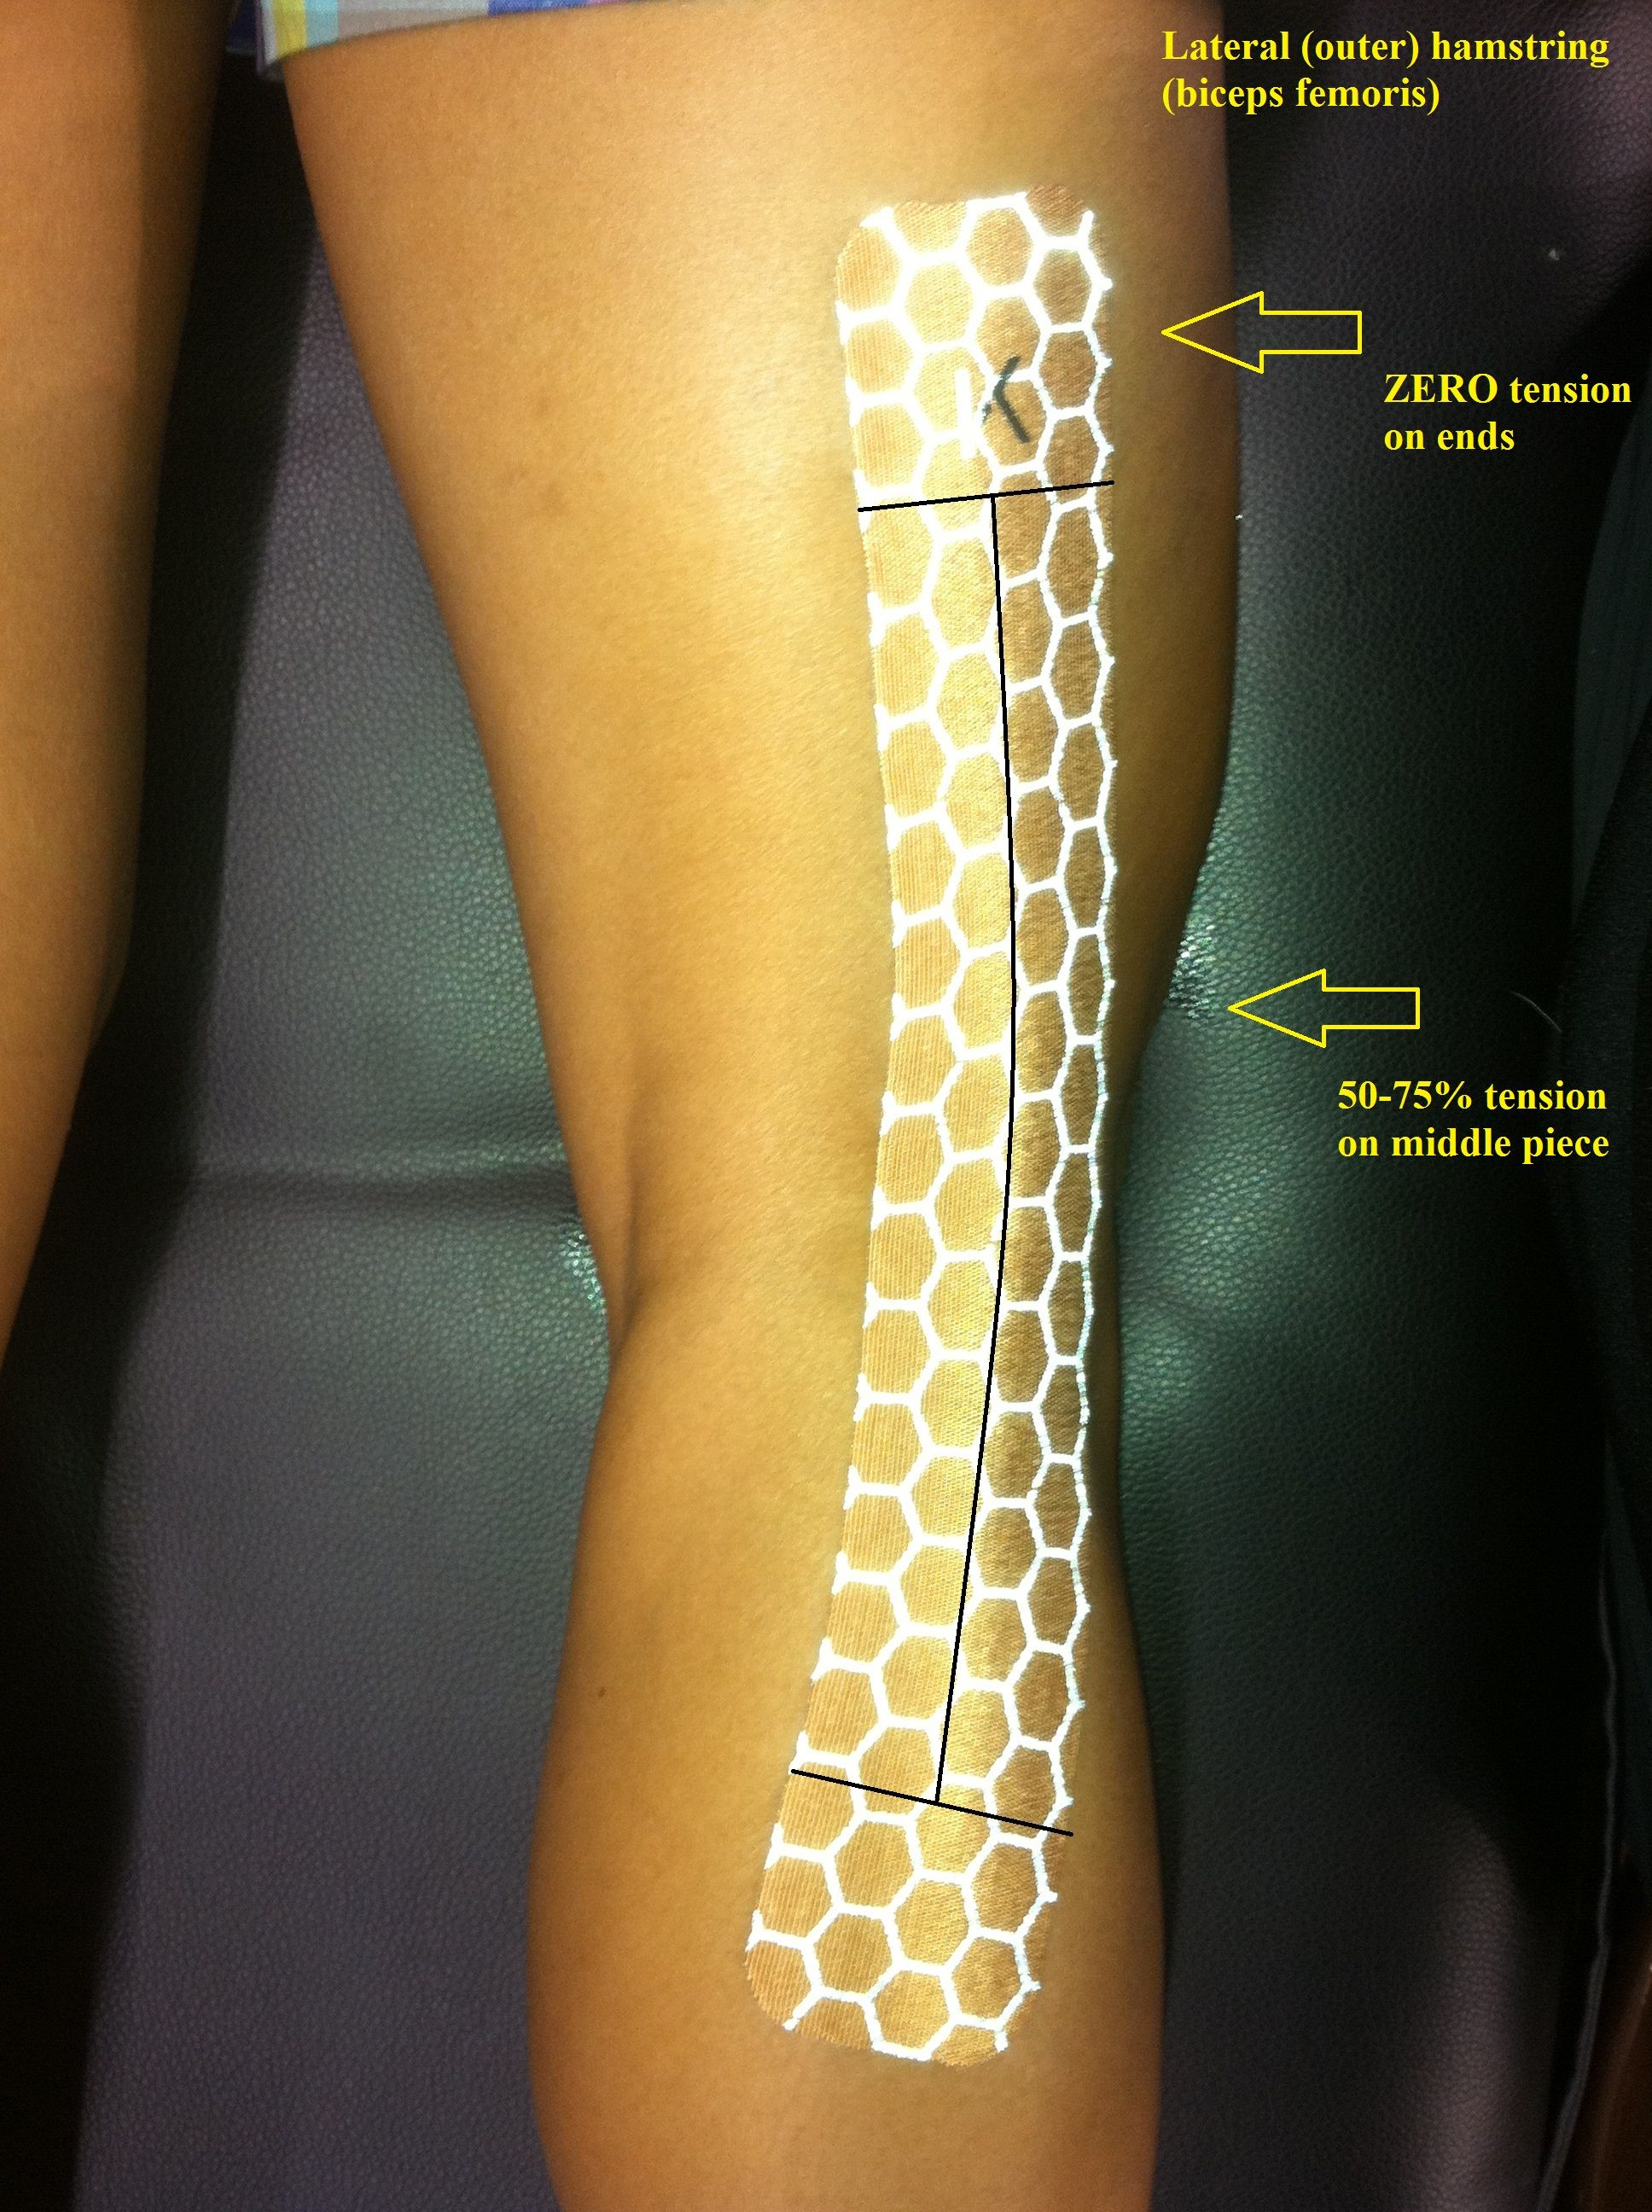 how to kt tape knee pain